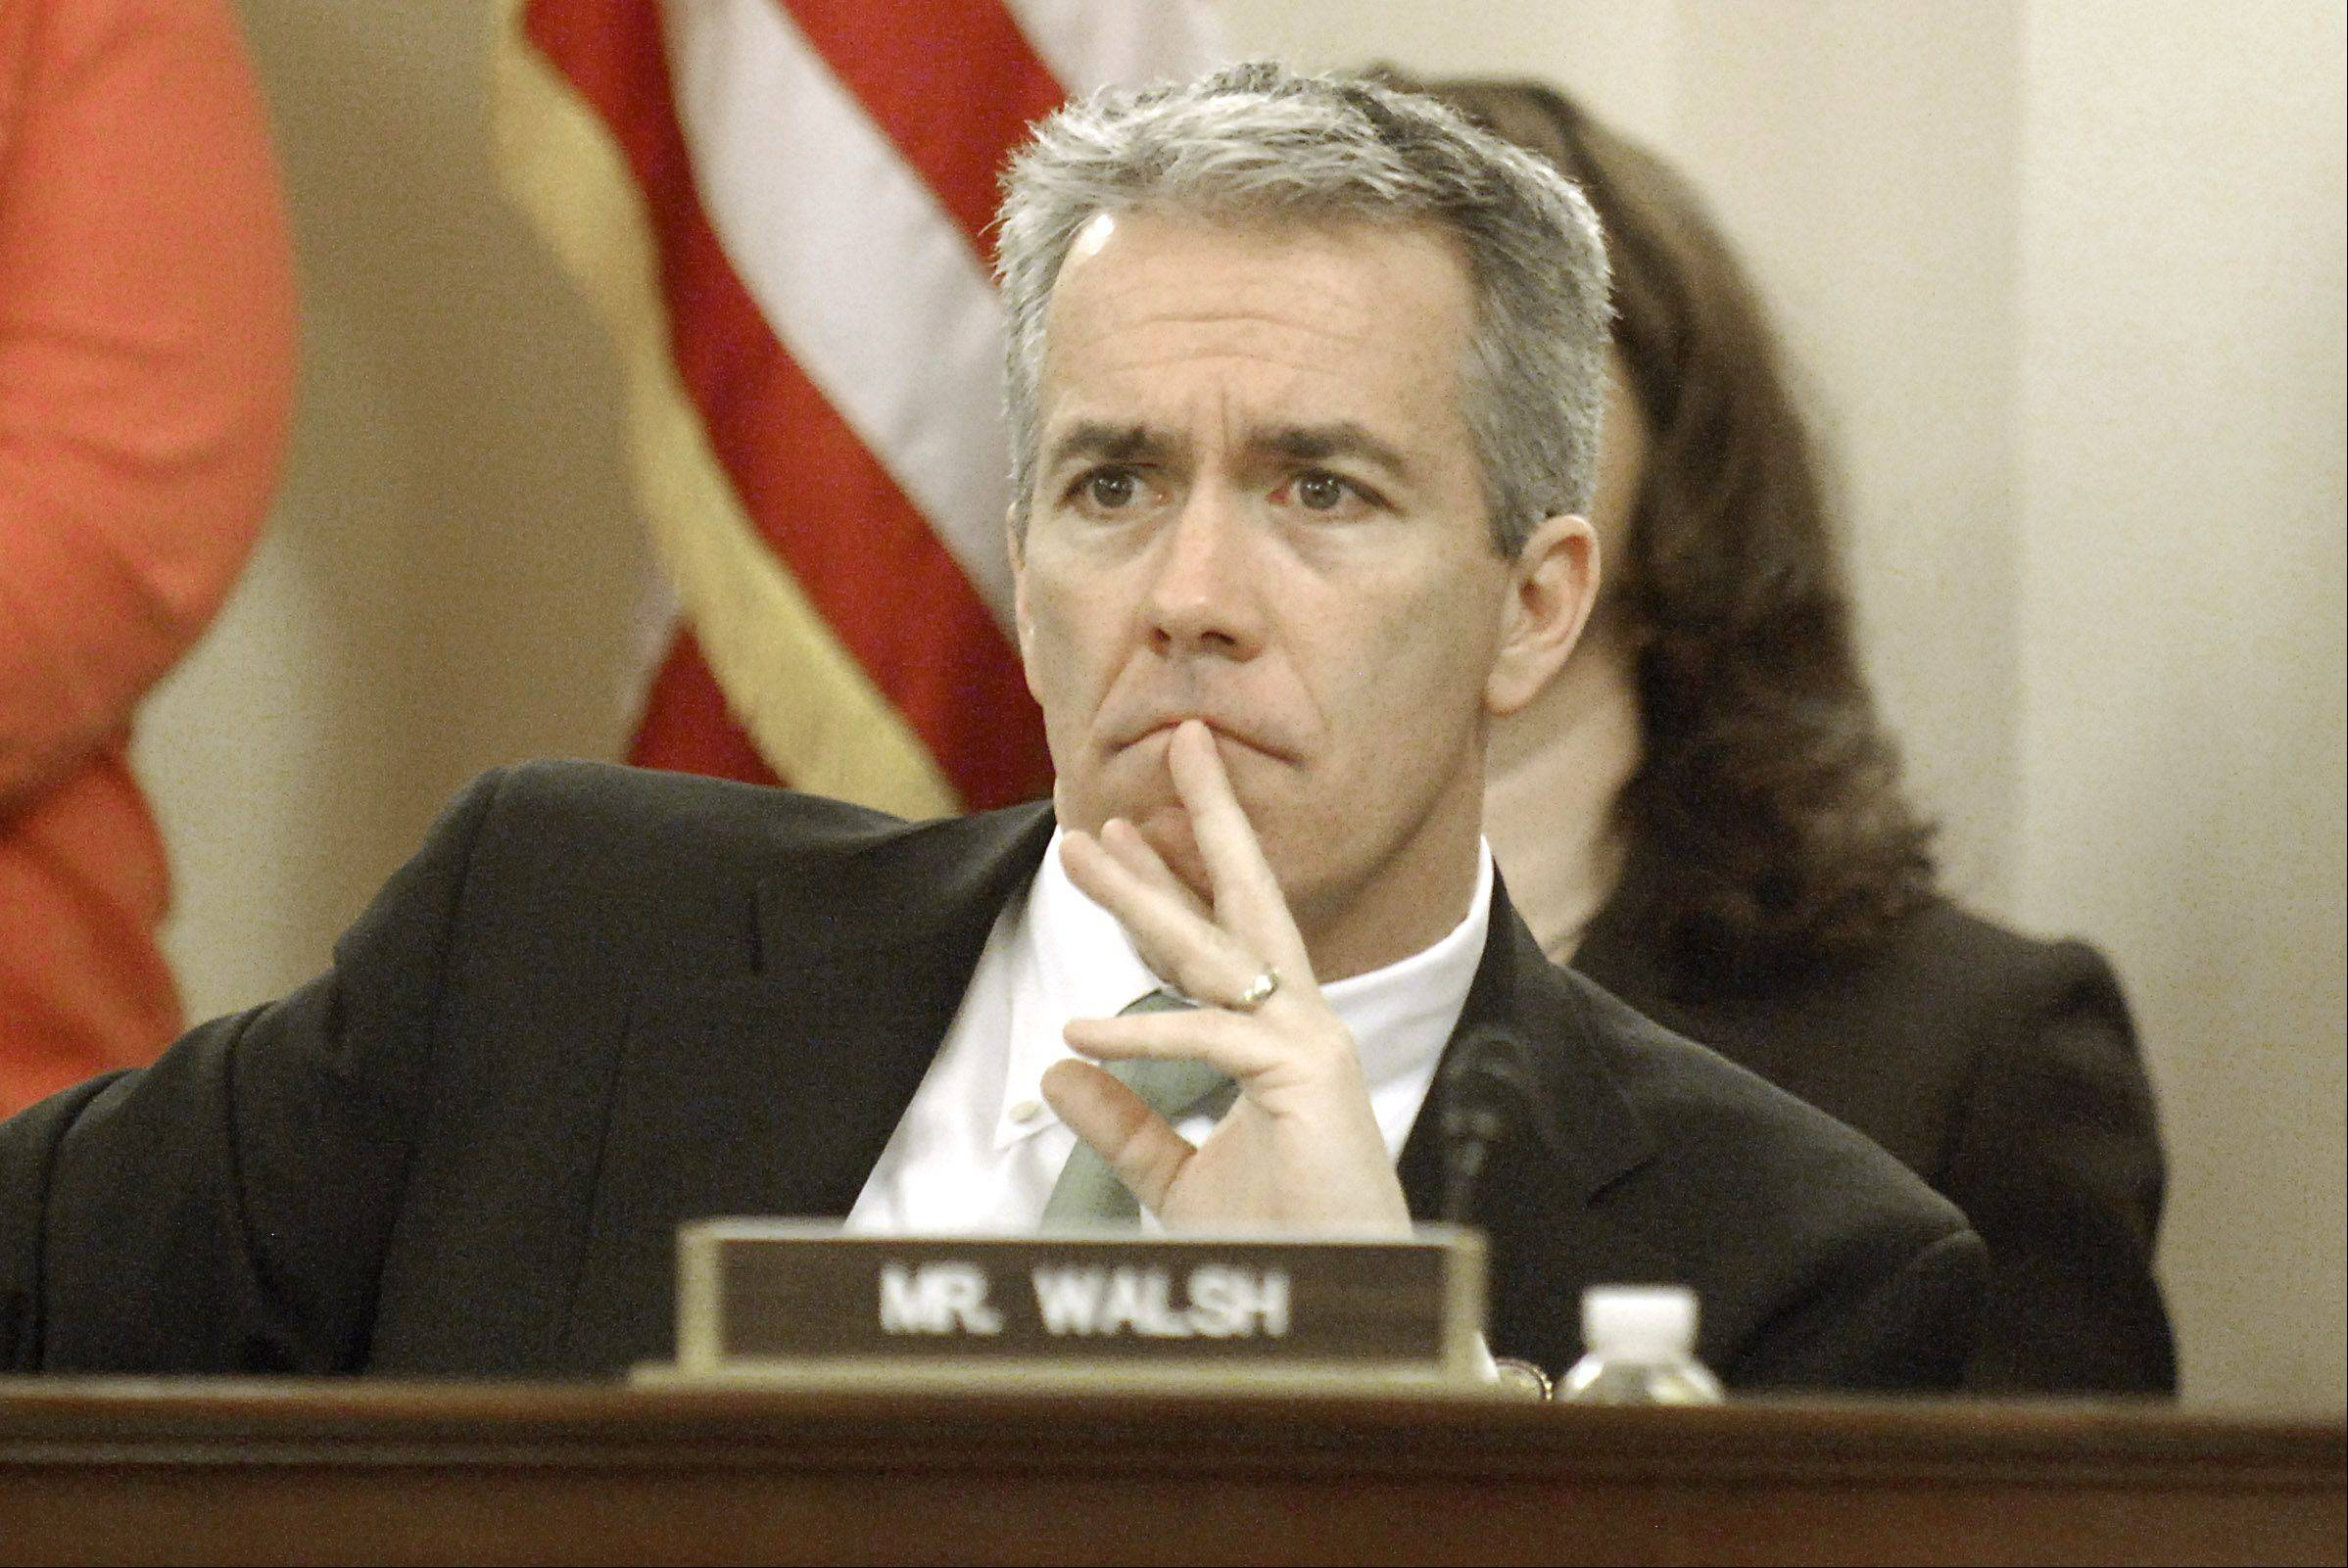 """I have nothing but the highest respect for the office of the president, but I will never apologize for listening to my constituents over another one of the president's political speeches,"" Joe Walsh says in an op-ed piece in response to a Daily Herald editorial."